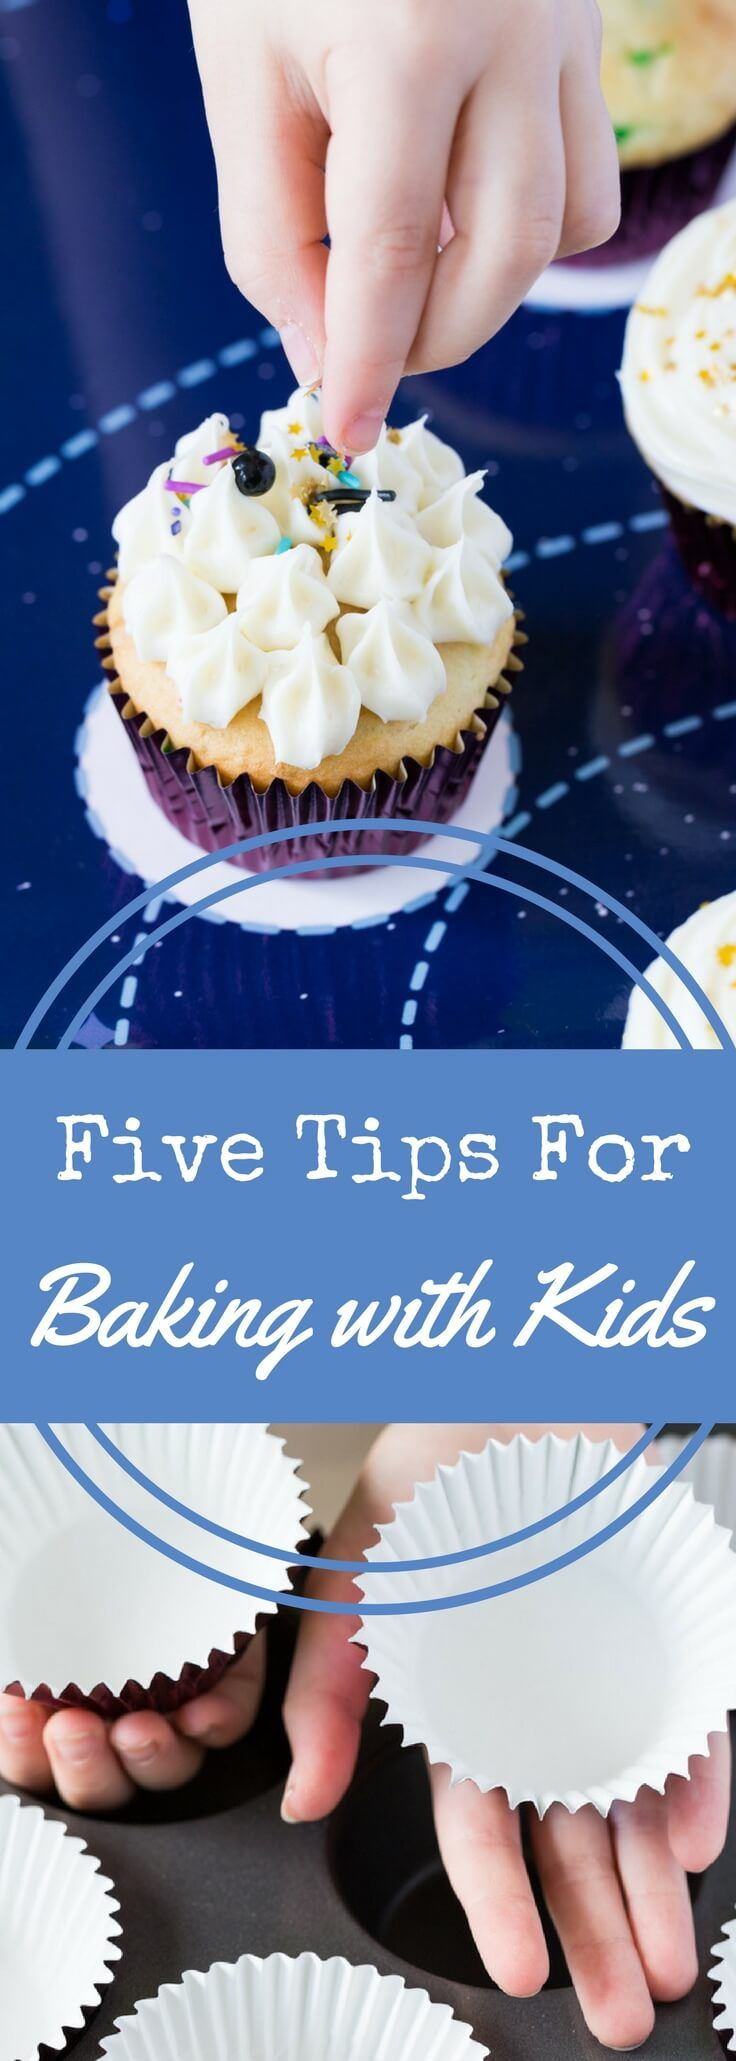 Baking with kids can be a joy—if you know how to make it go smoothly.  Get the five tips every baker should know for baking with children. @pillsburybaking #ad #DoughboySurprise